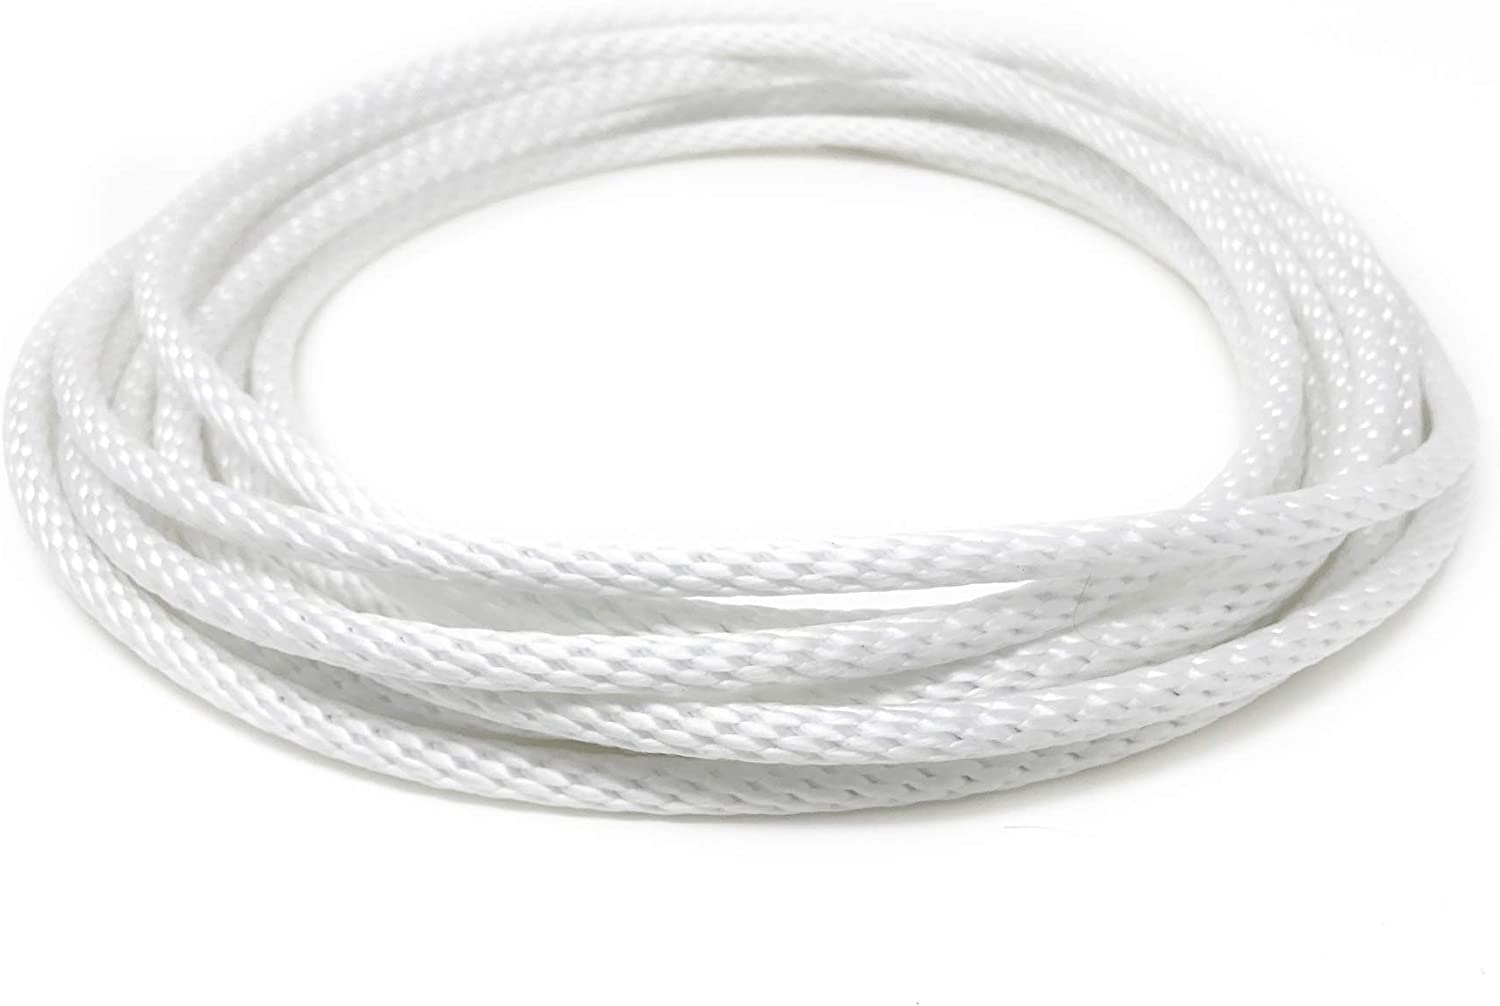 Max 79% OFF Flagpole Halyard Inventory cleanup selling sale Rope 5 16